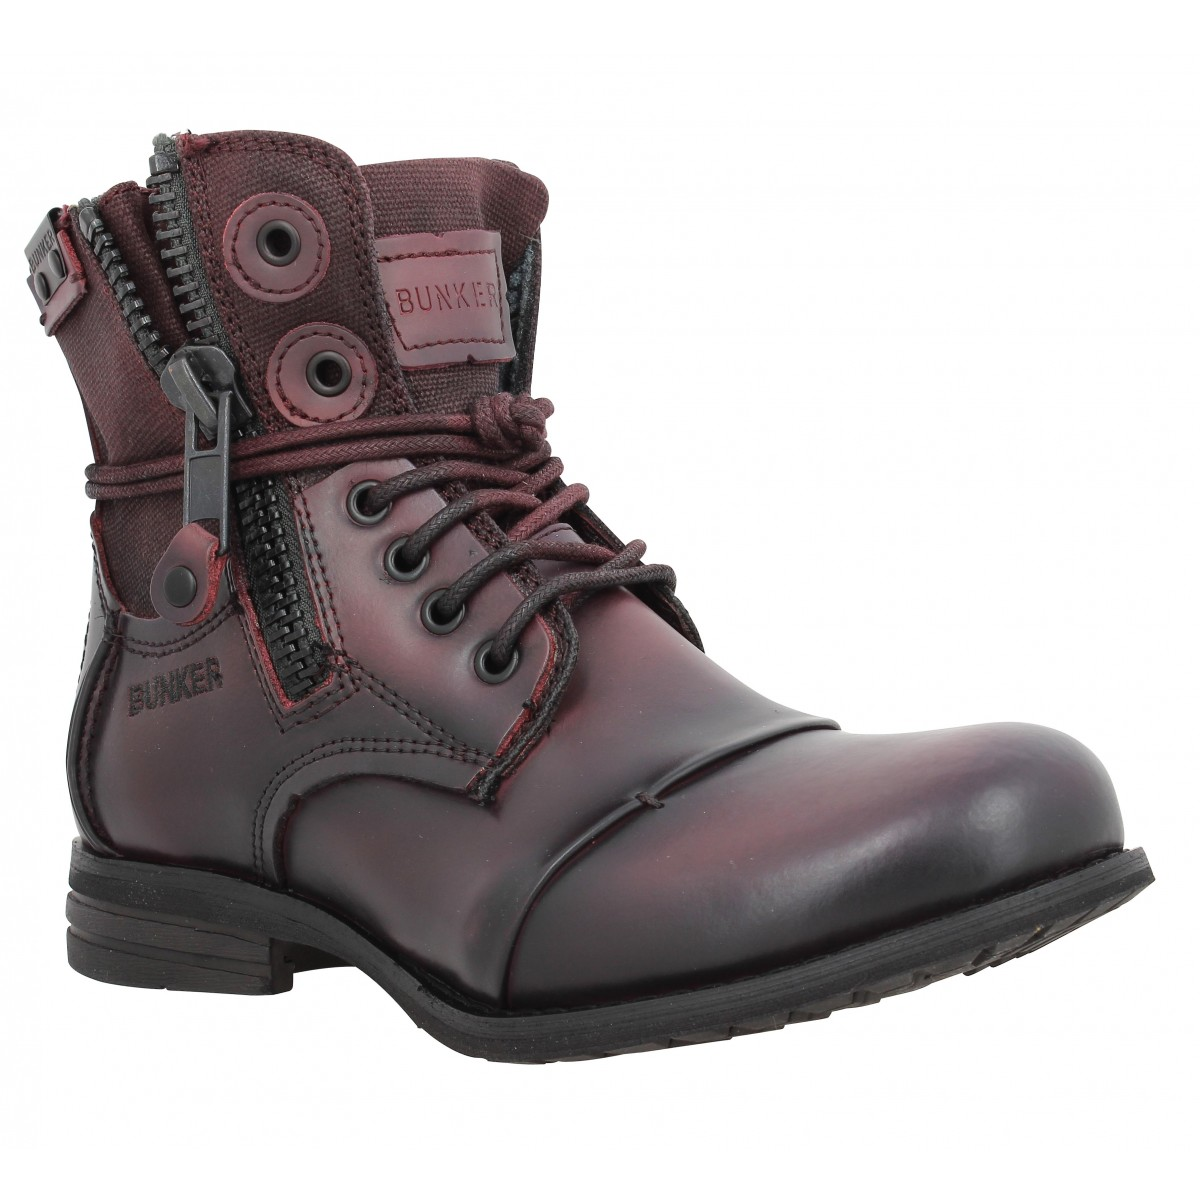 Bottines BUNKER Zip Sp Femme Bordeaux